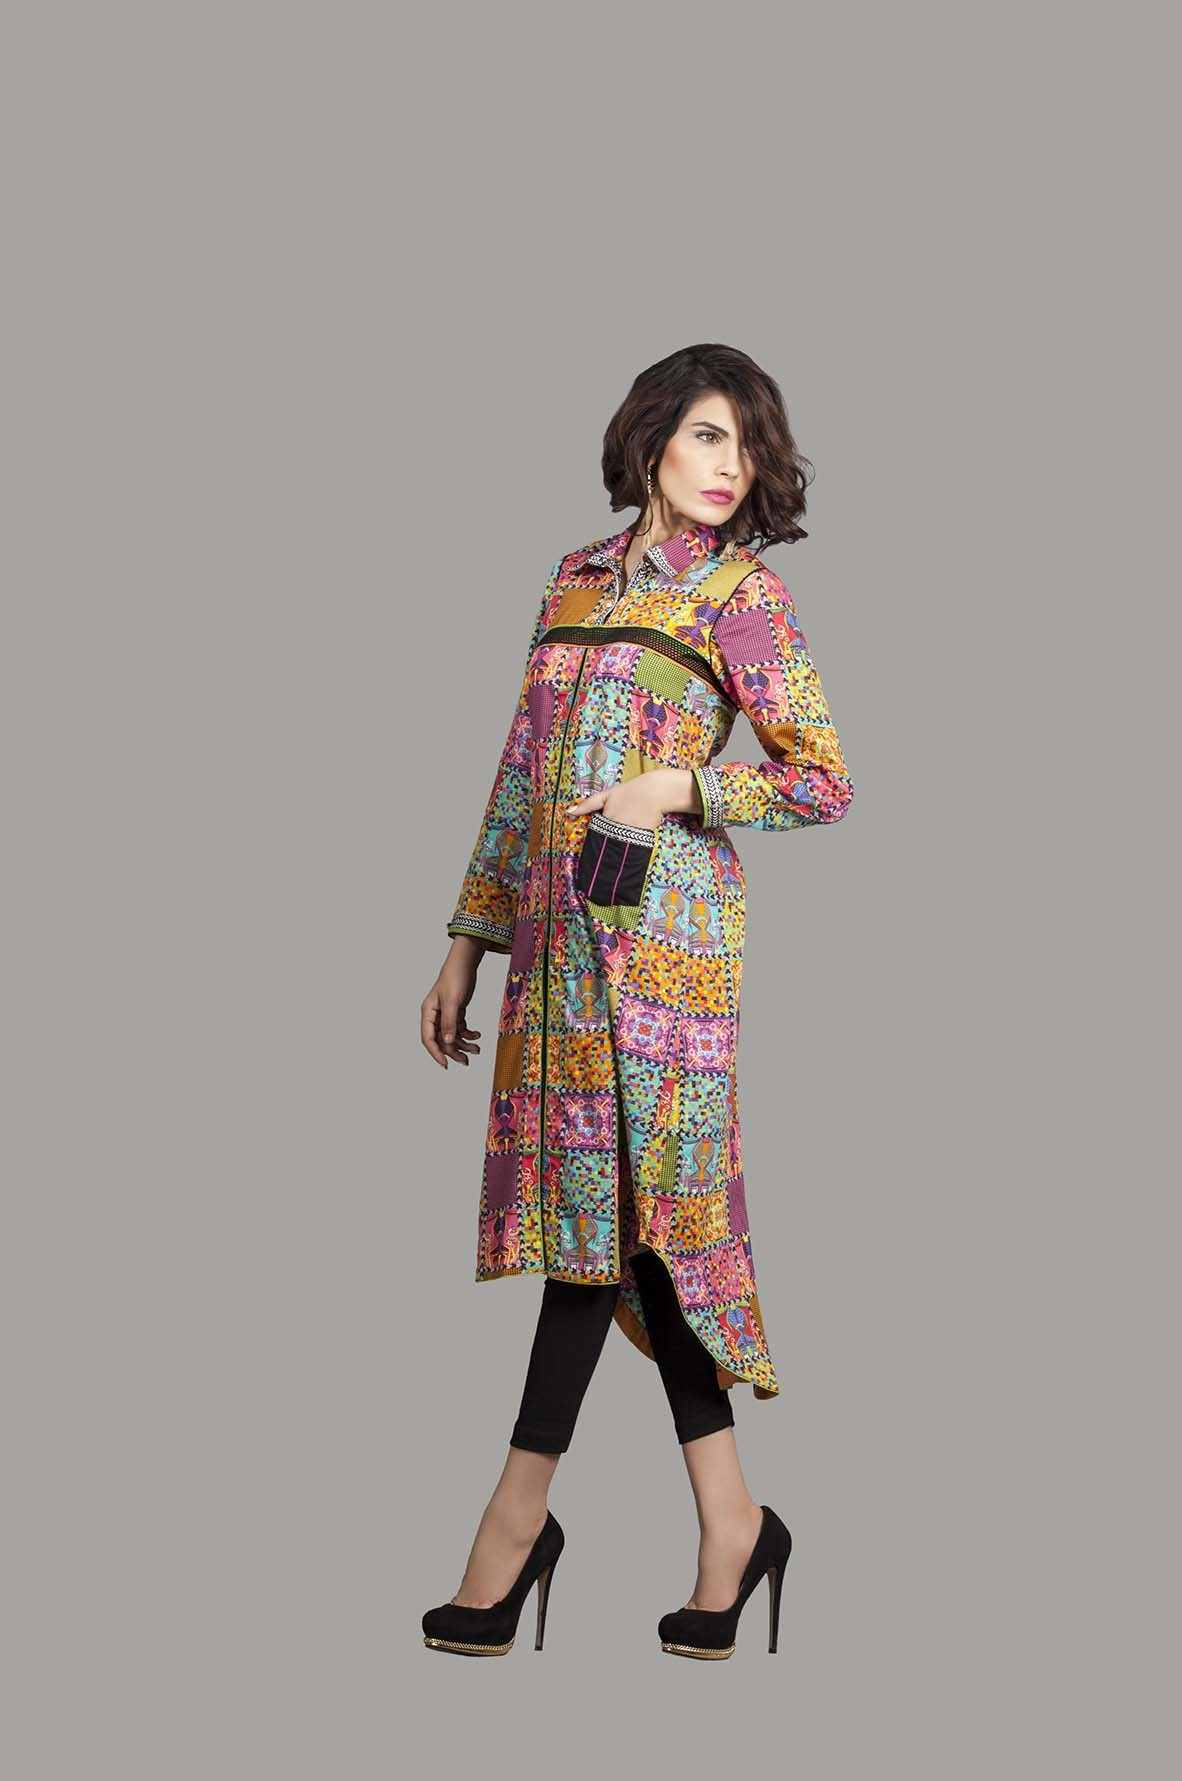 Kayseria Latest Winter Prints Best Shawls & Dresses Cambric Collection 2014-2015 (7)